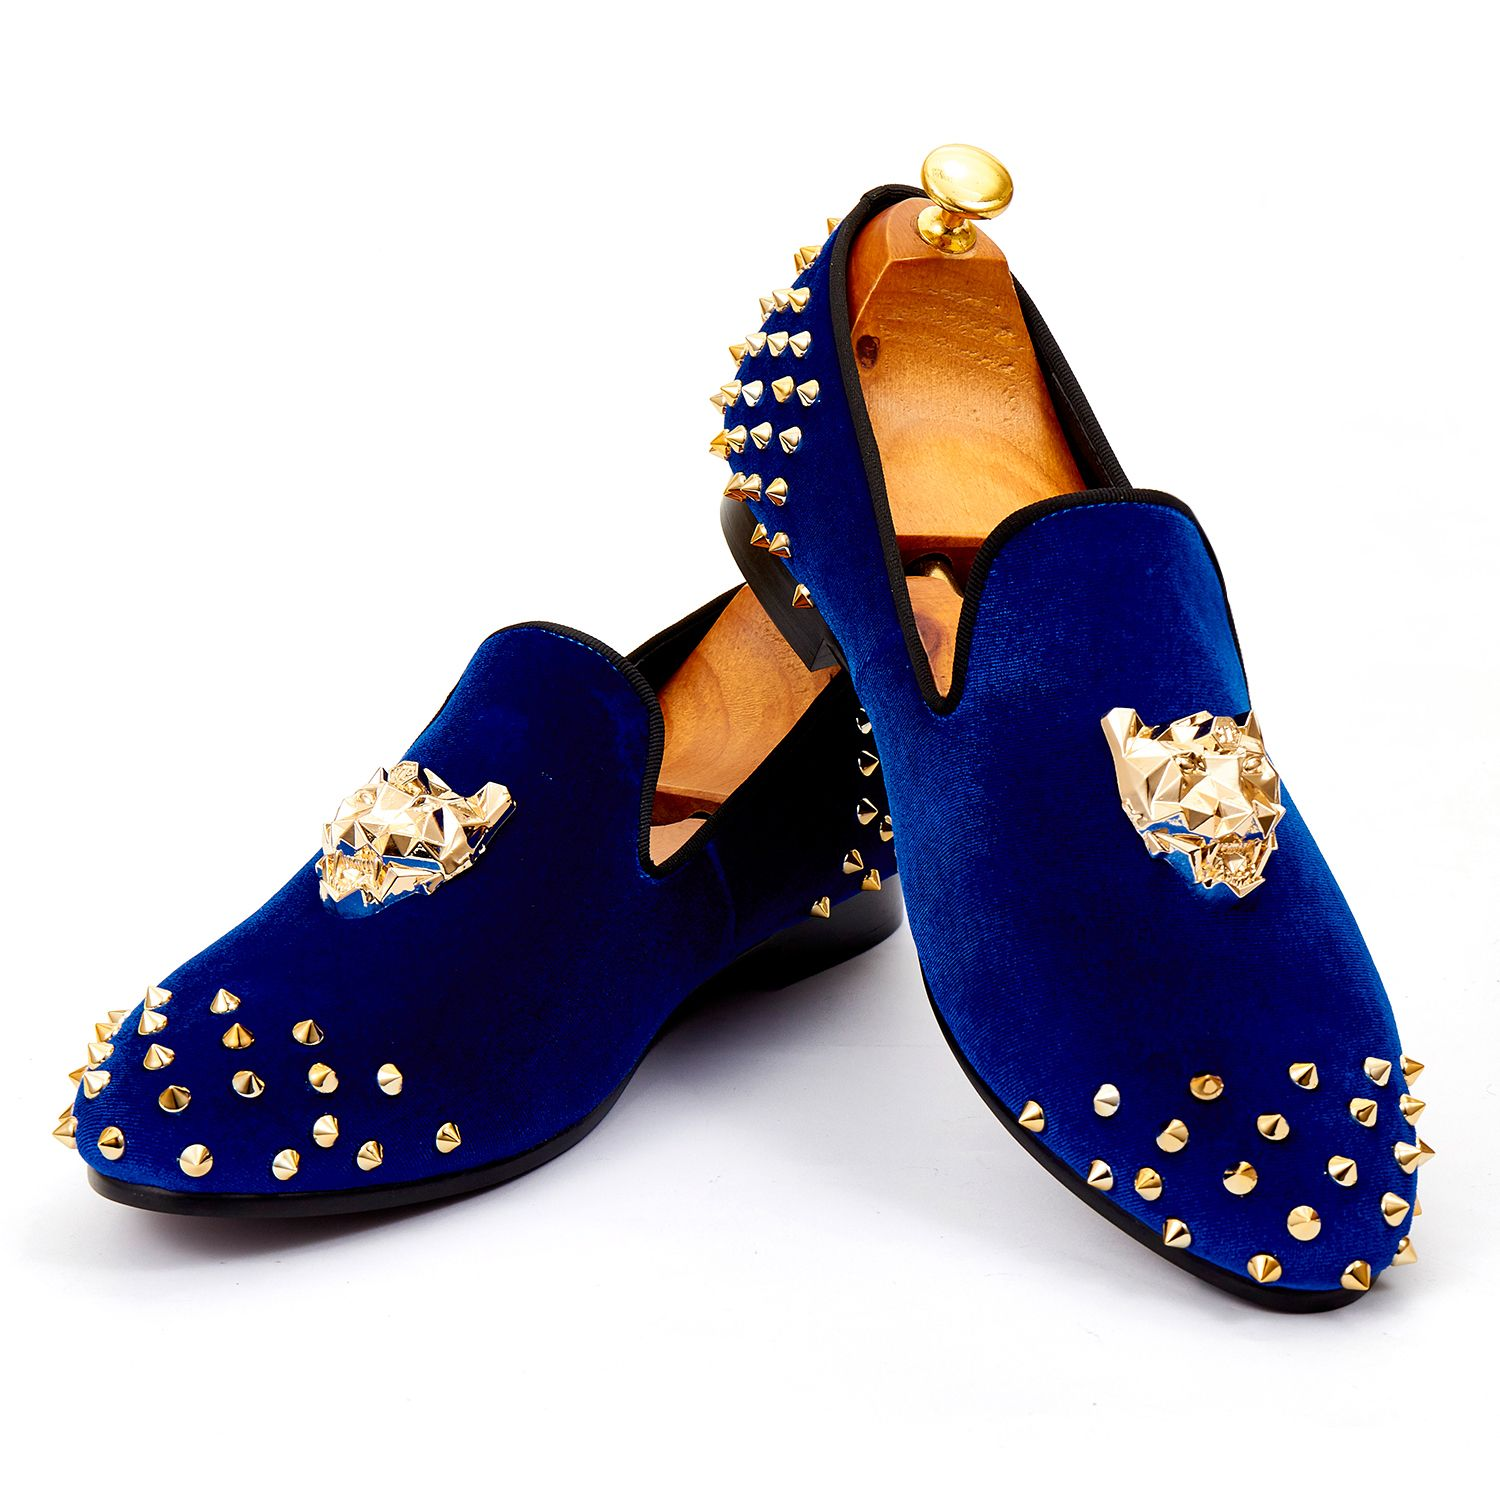 Harpelunde Mens Wedding Shoes Spikes Blue Velvet Loafers Animal Buckle Flat  Shoes Size 7-14 bd207bed3863